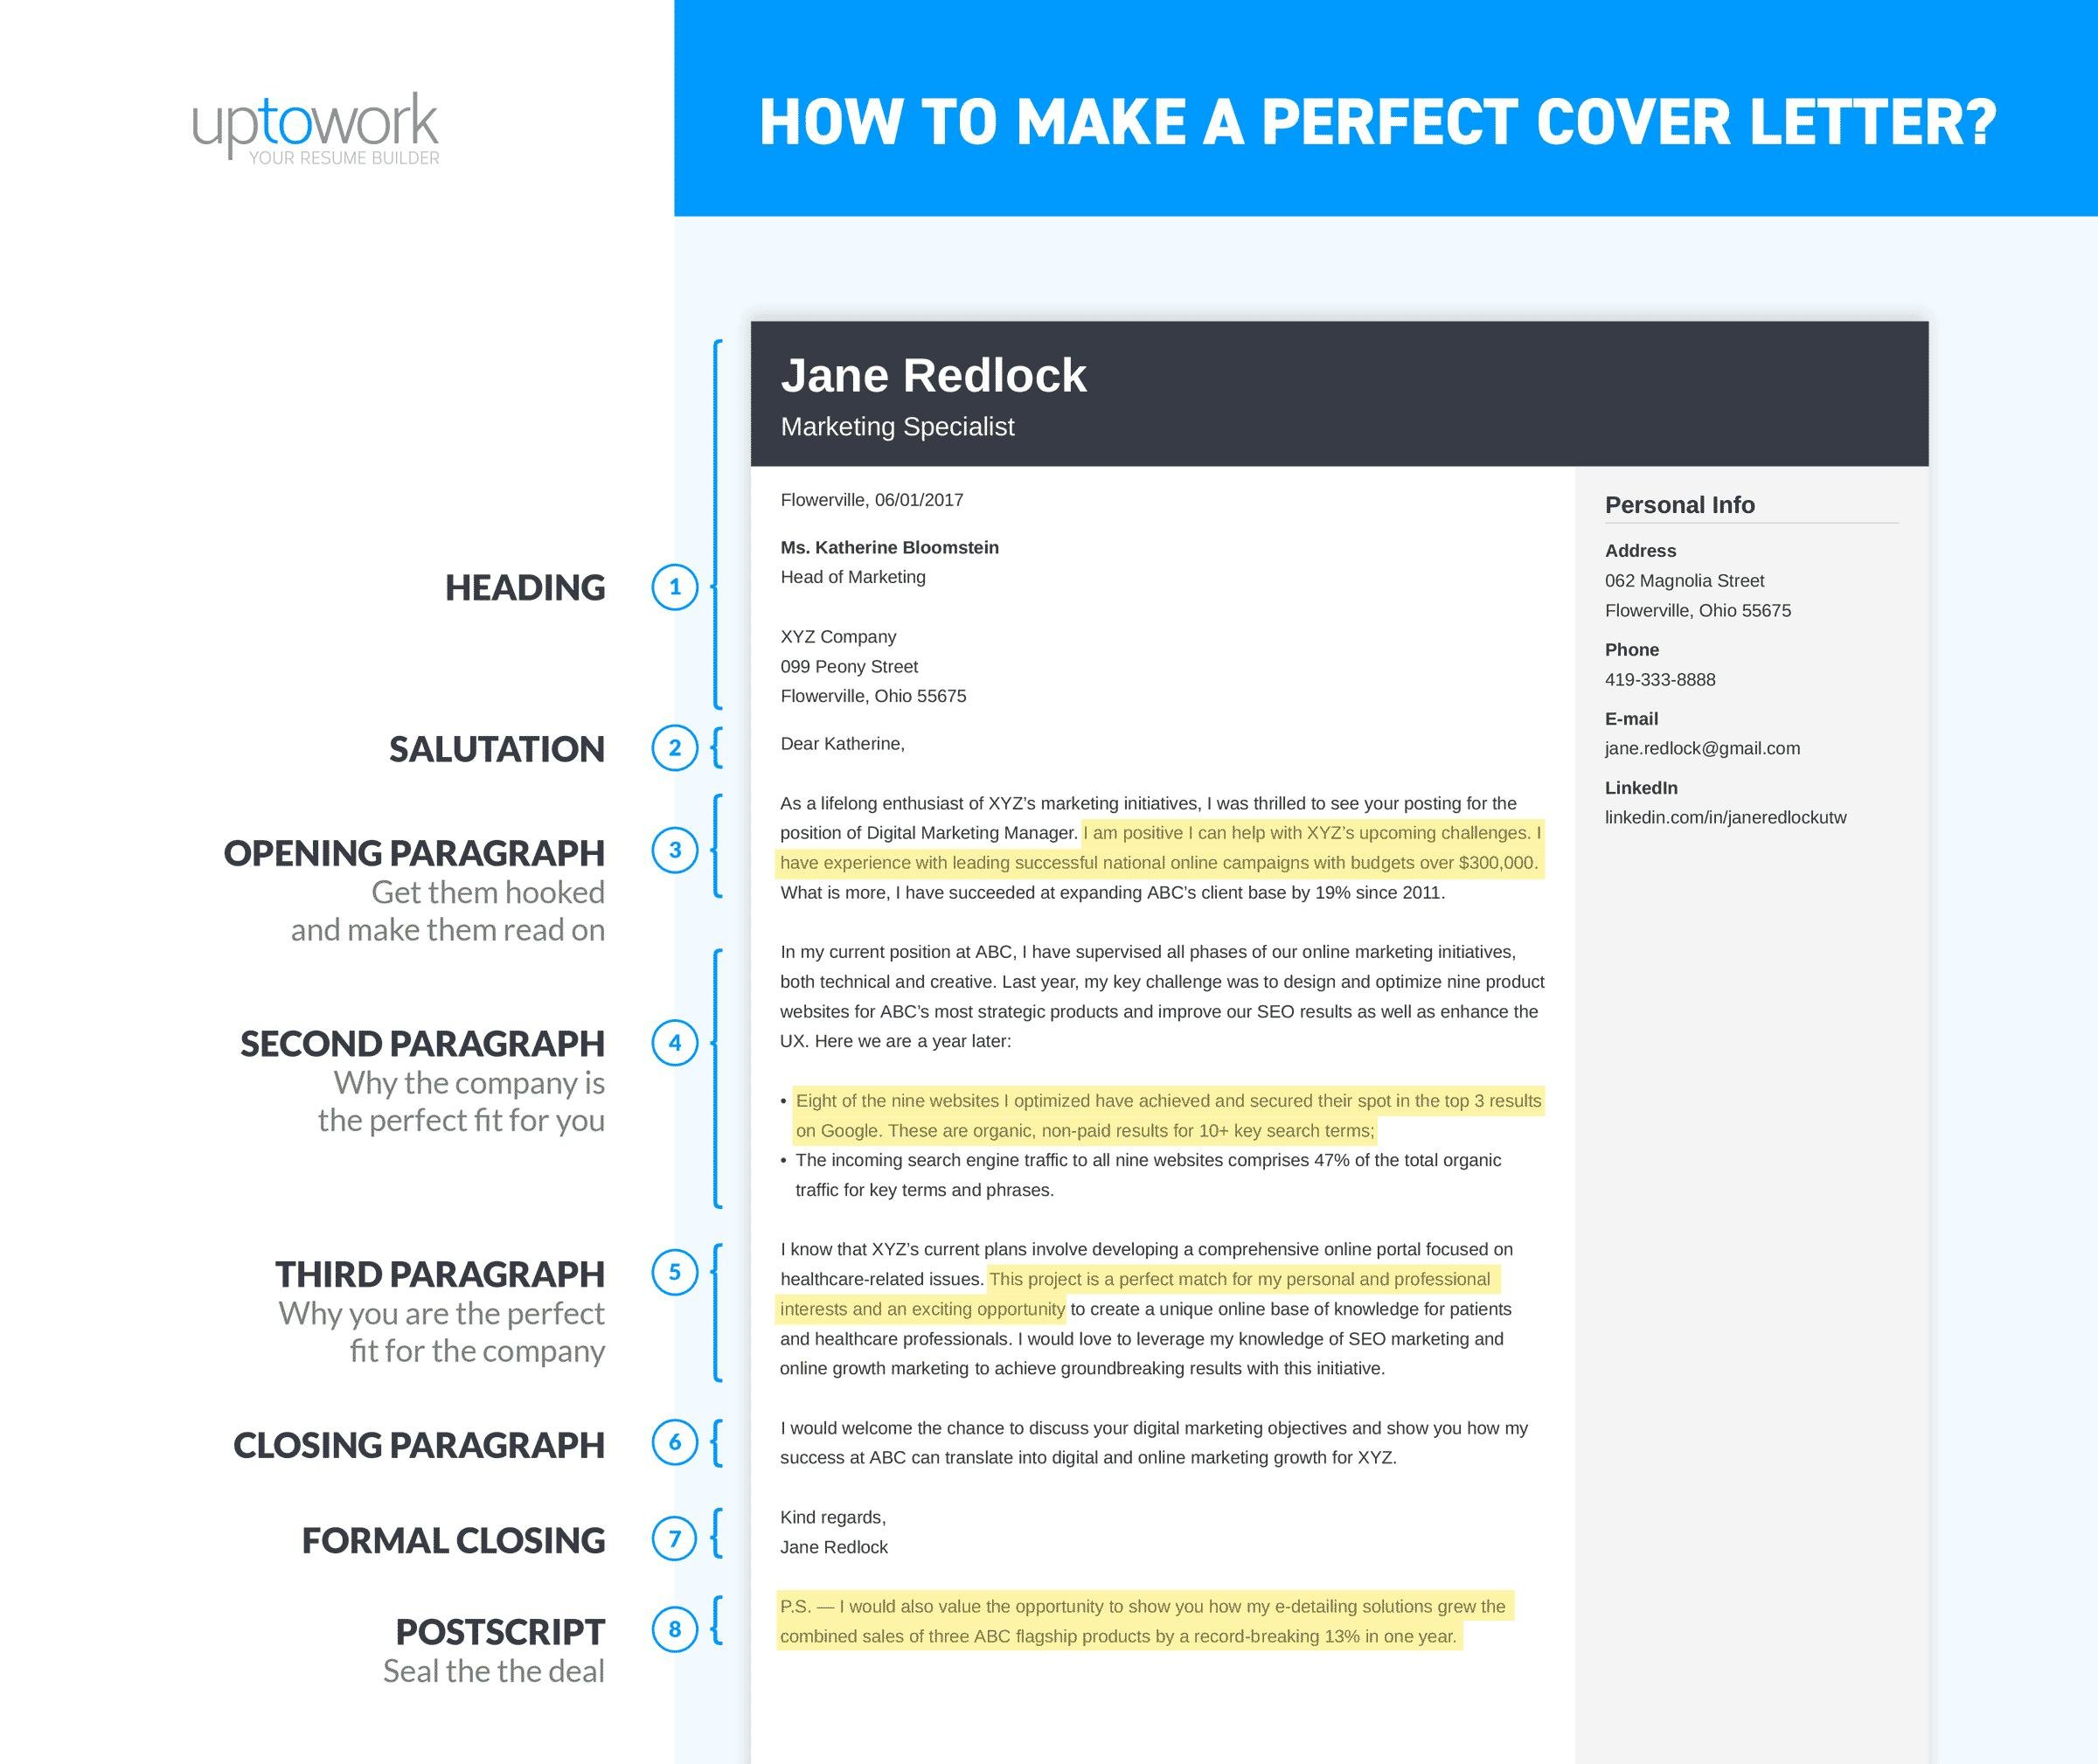 How to write a cover letter in 8 simple steps 12 examples for How to compose a cover letter for a job